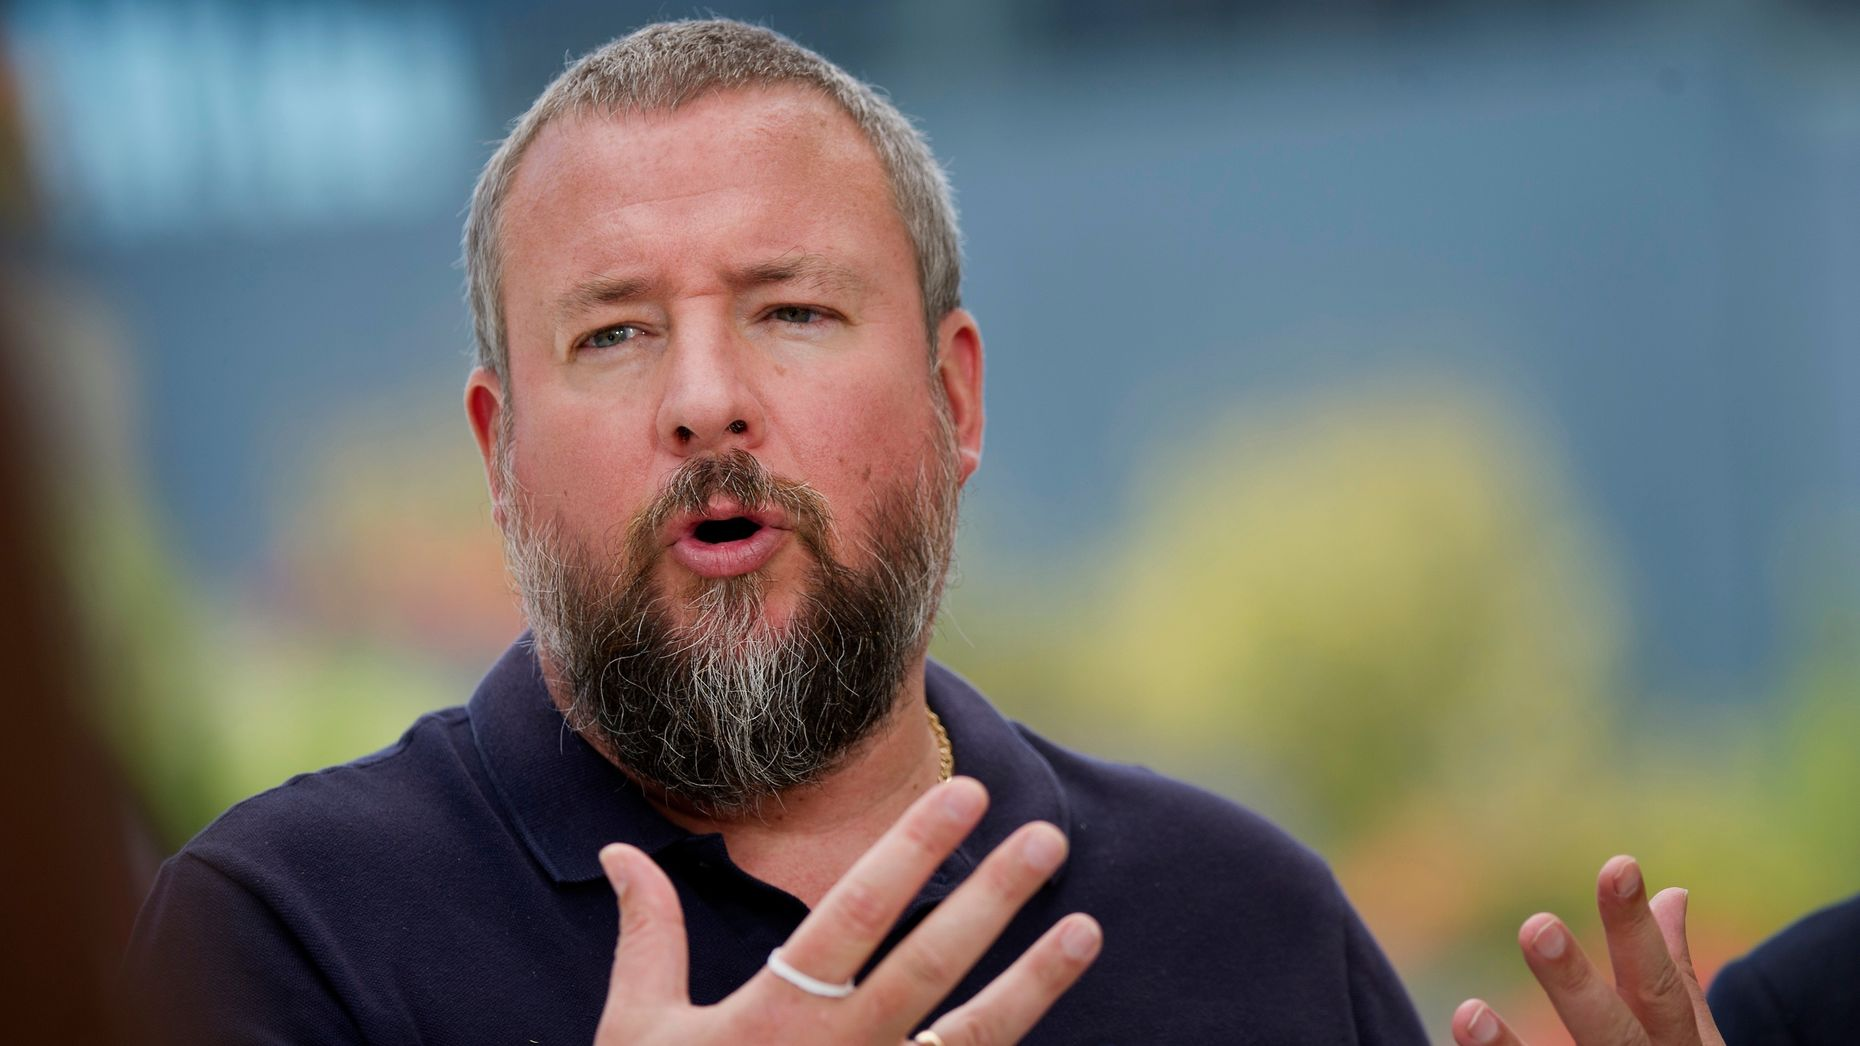 Vice CEO Shane Smith. Photo by Bloomberg.